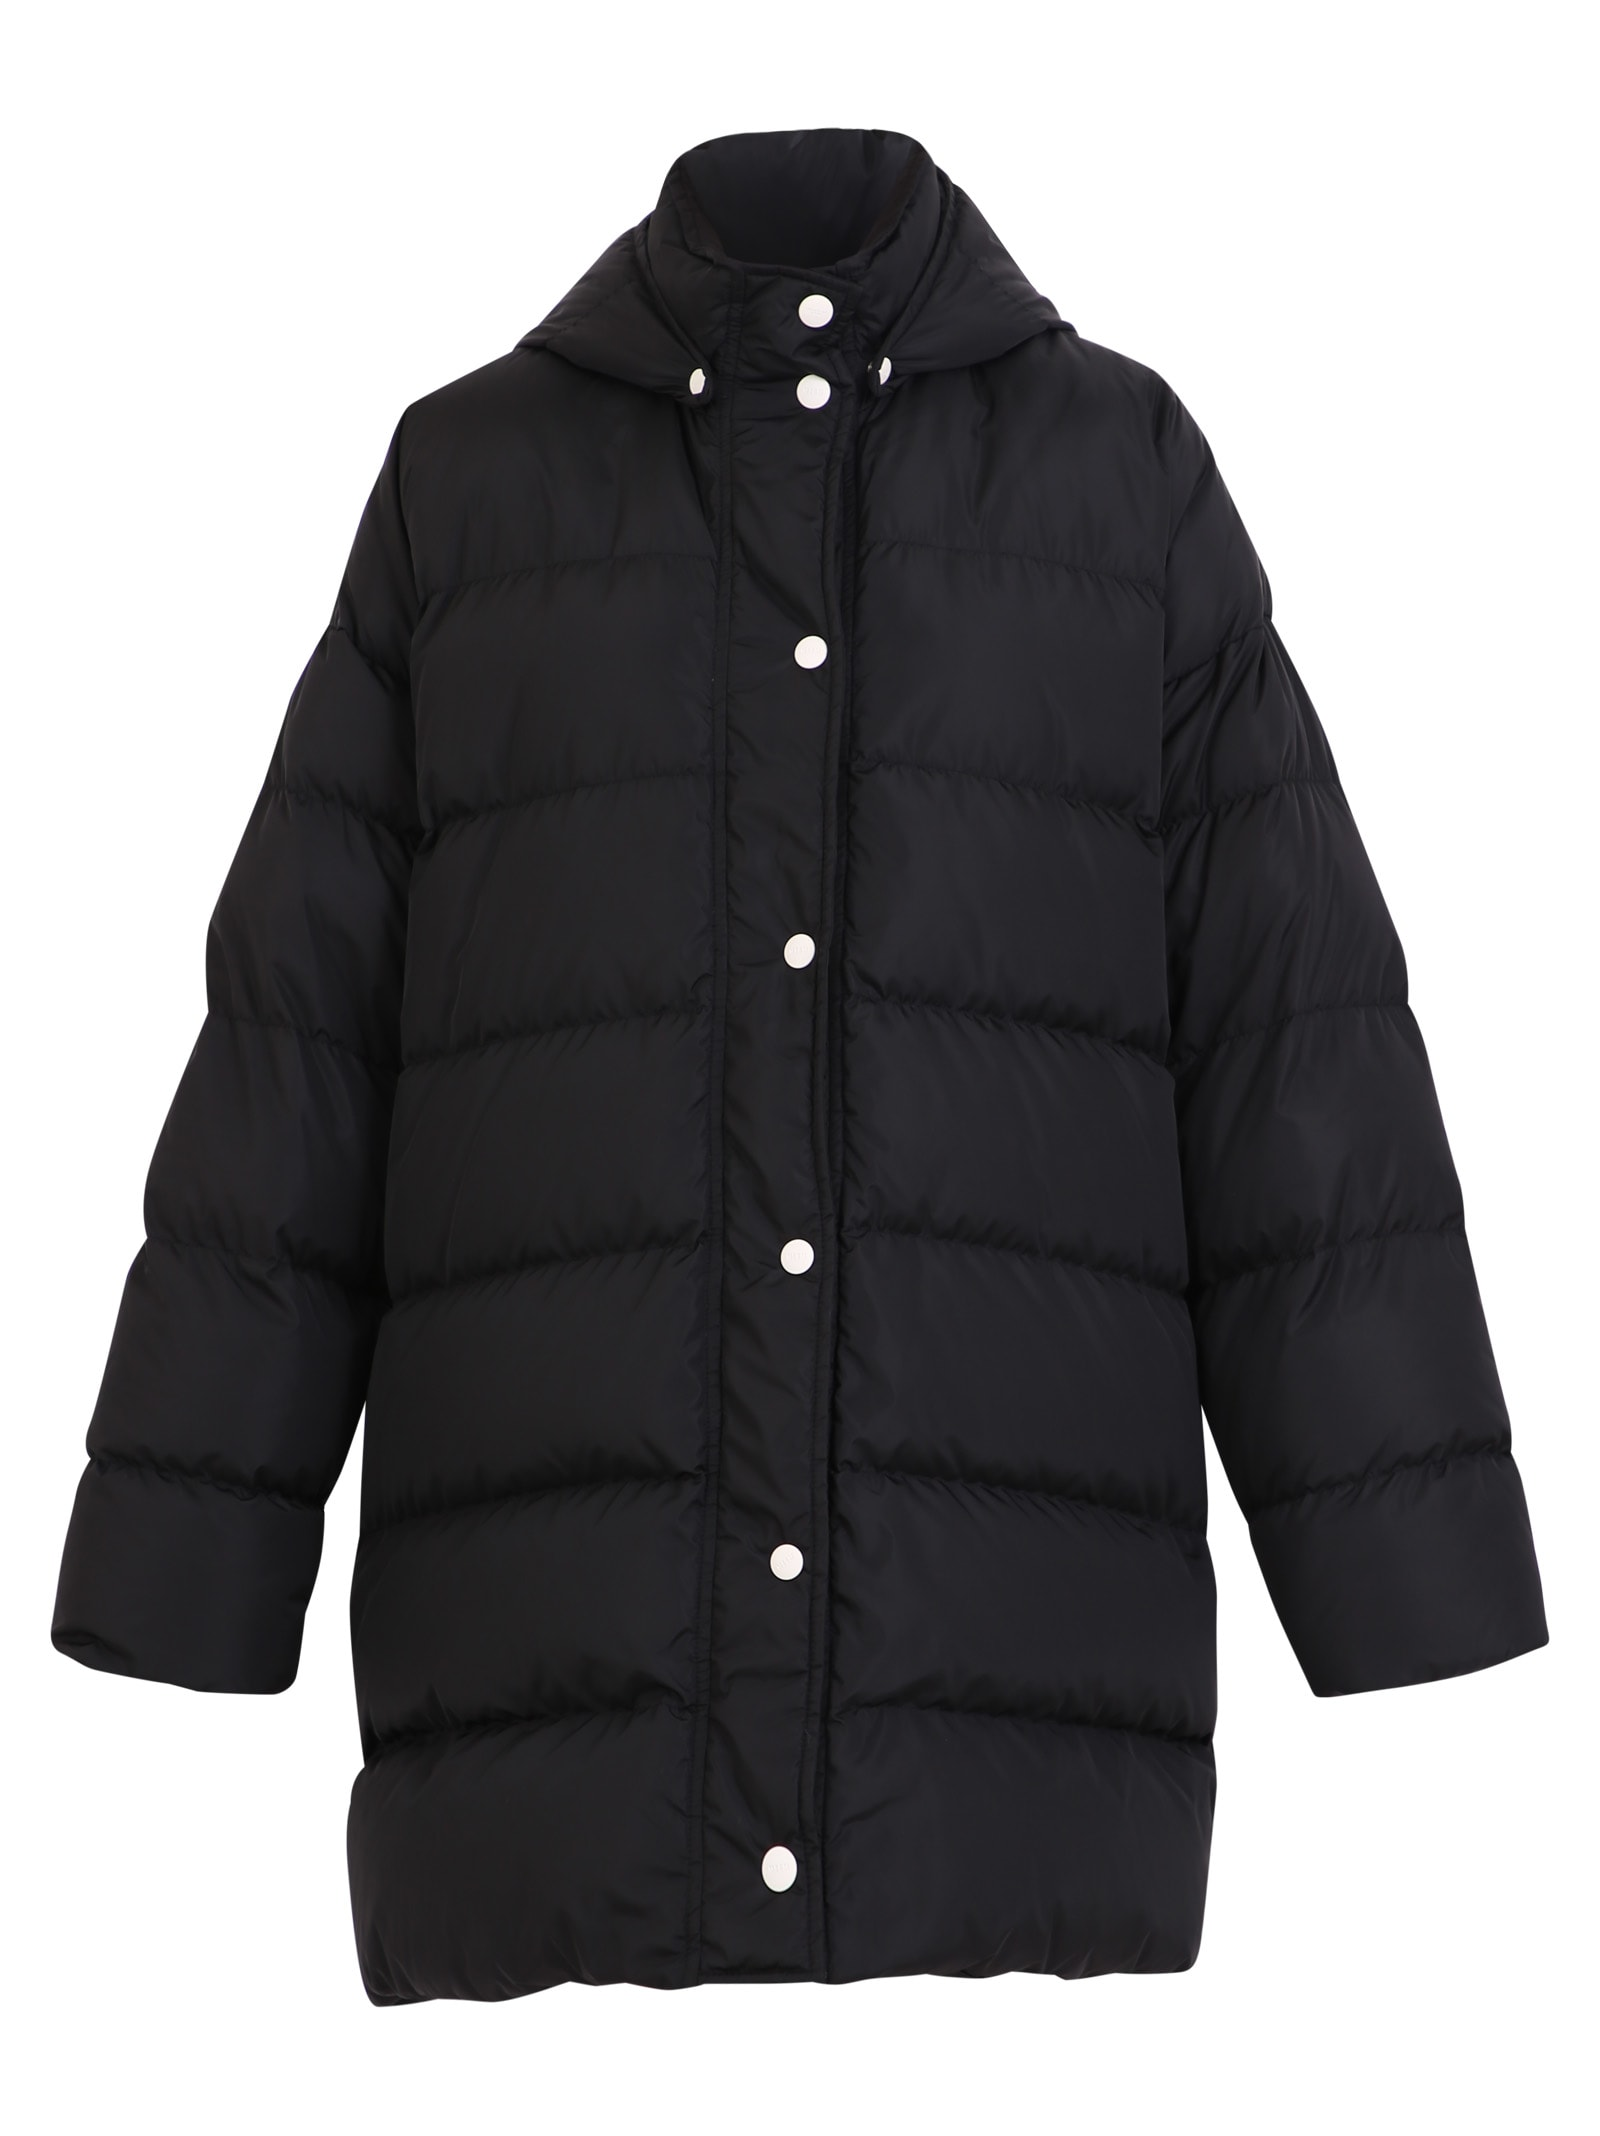 MSGM Branded Padded Jacket